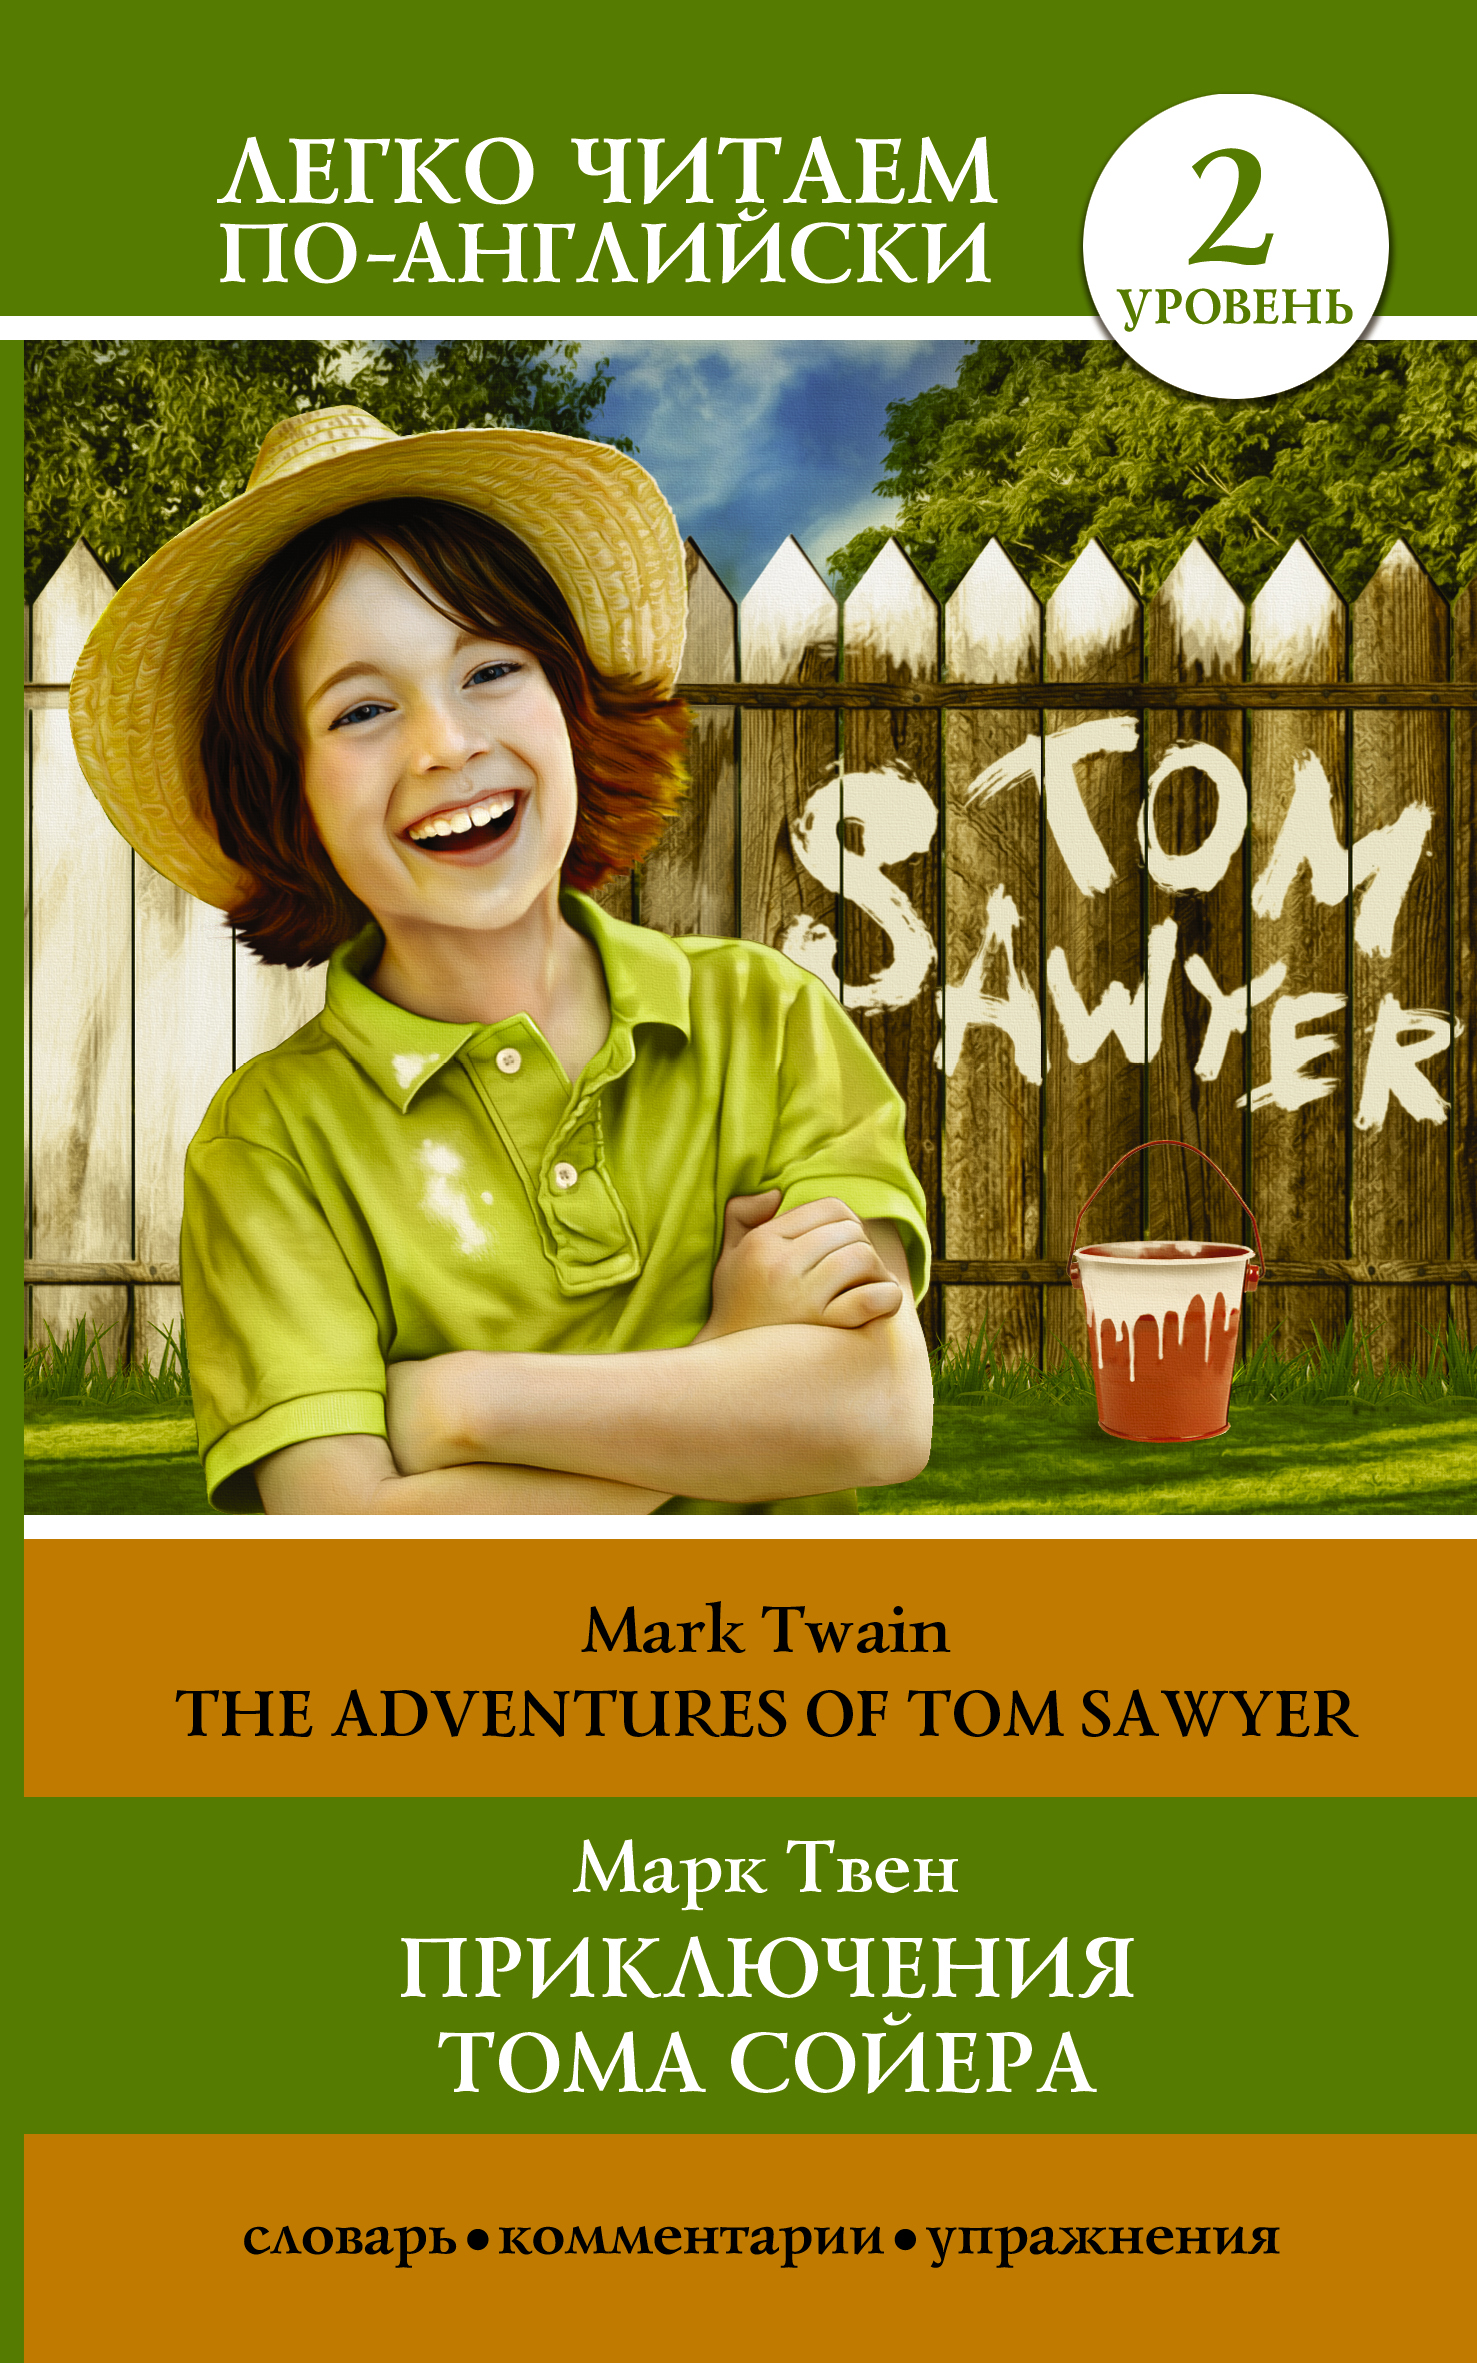 Твен М. Приключения Тома Сойера=The Adventures of Tom Sawyer mark twain the adventures of tom sawyer